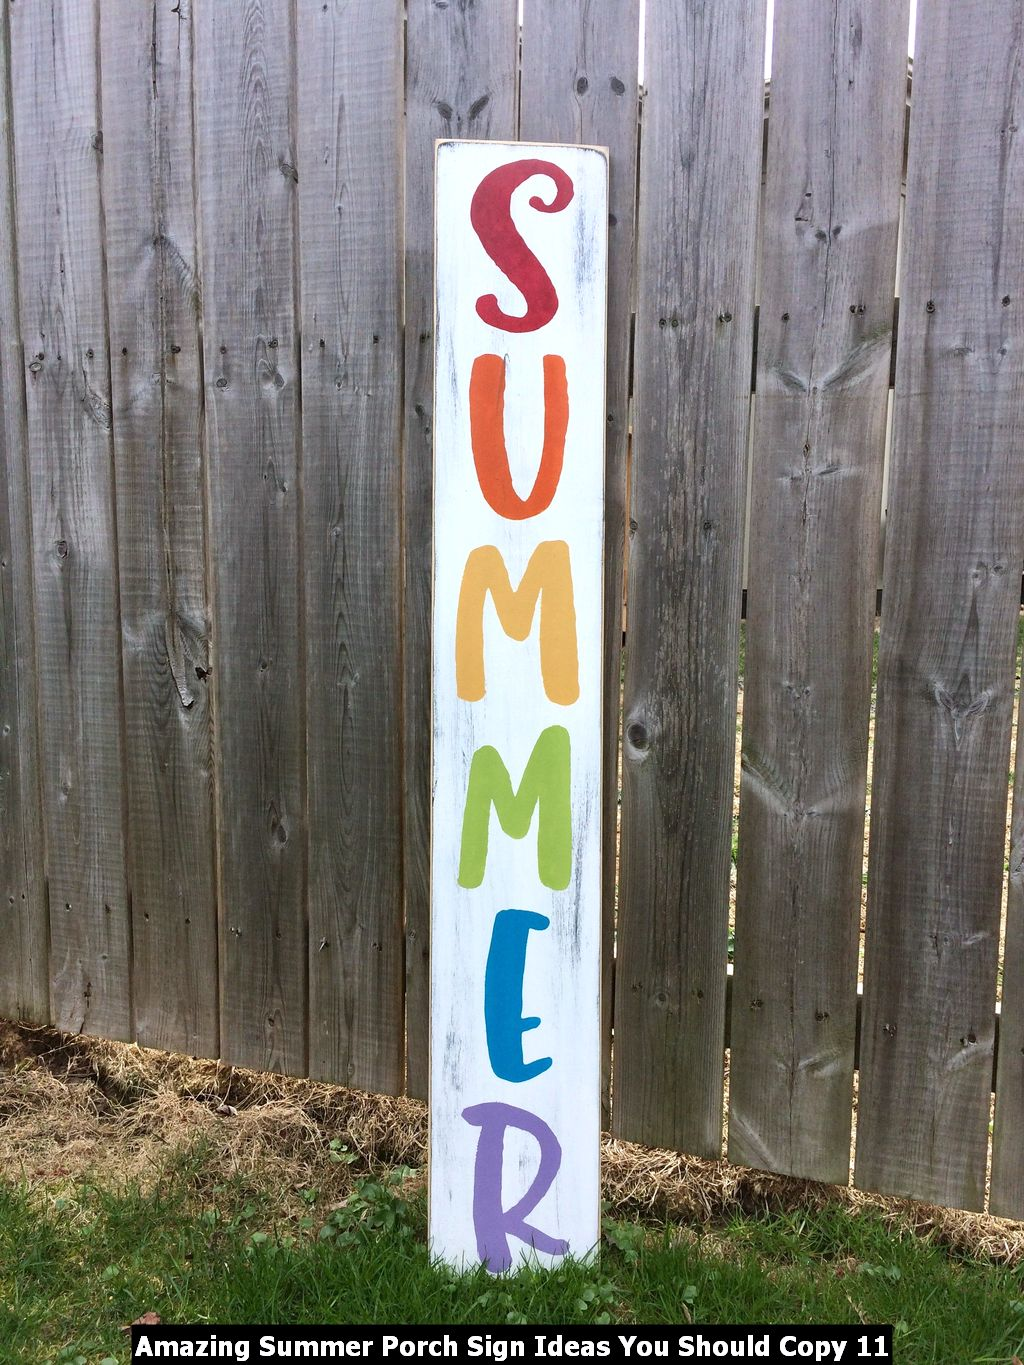 Amazing Summer Porch Sign Ideas You Should Copy 11